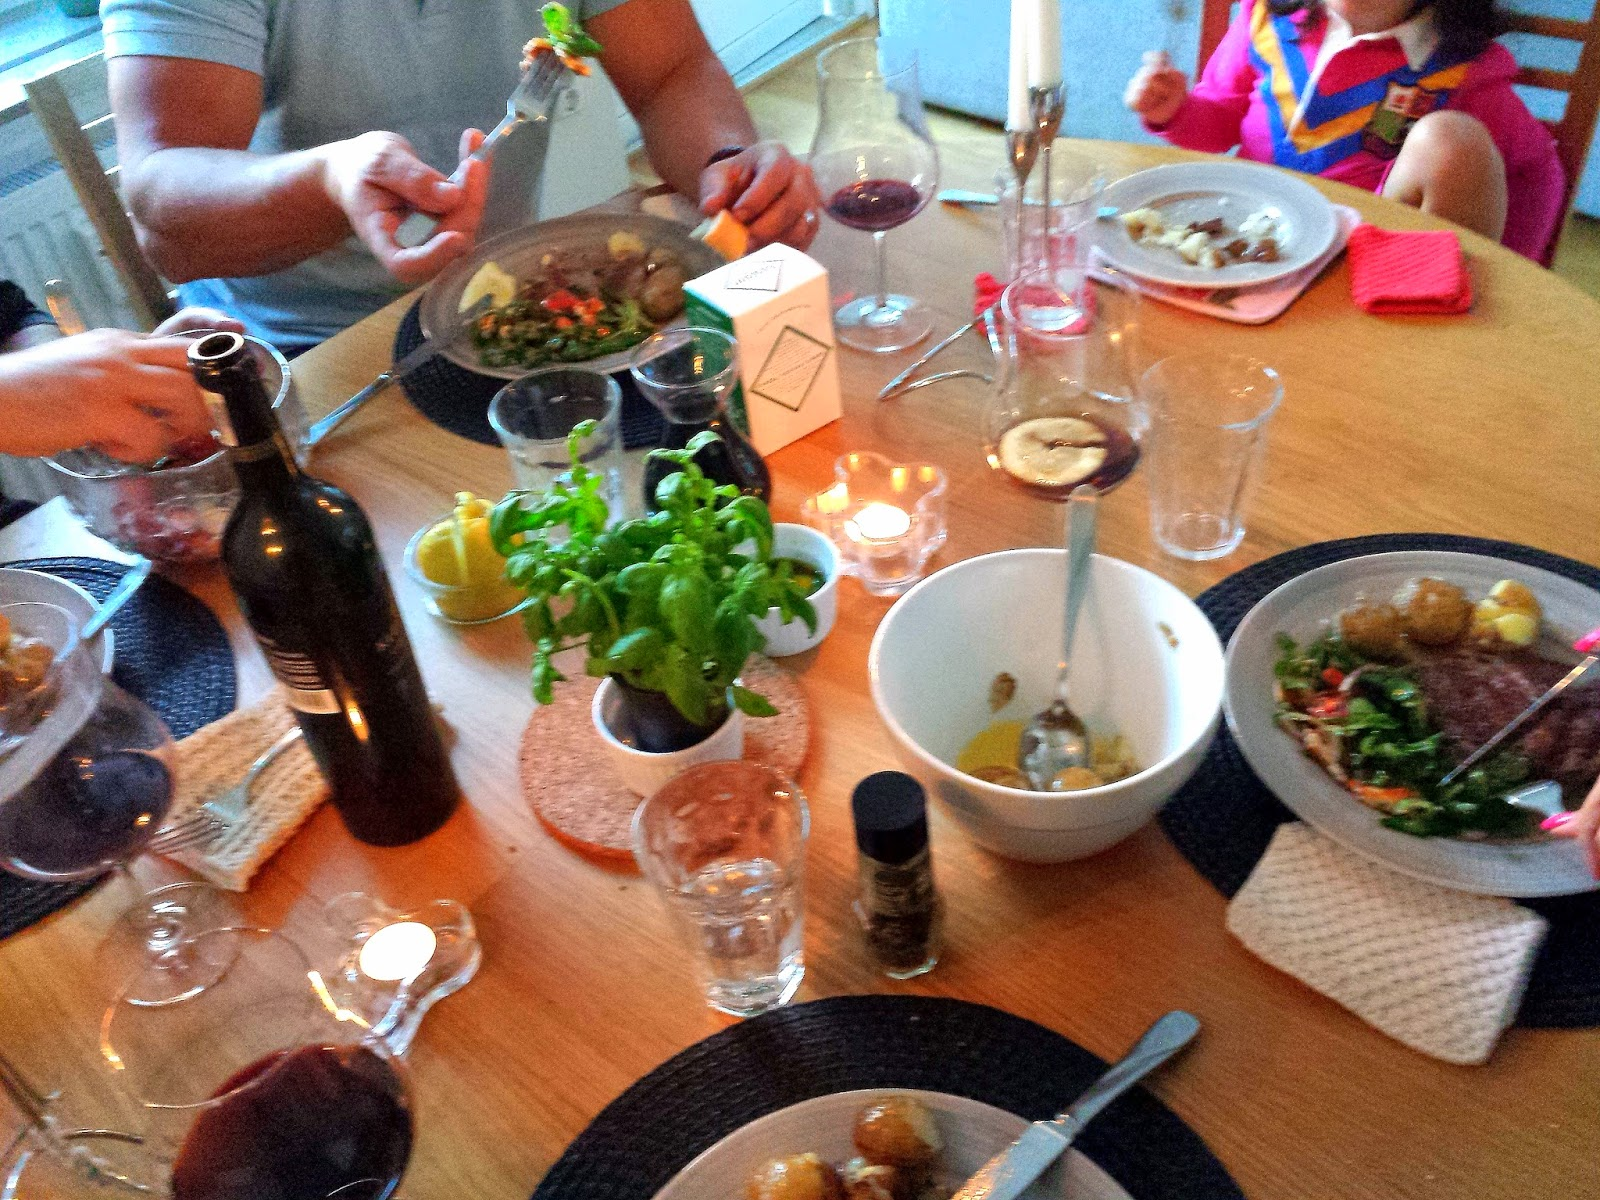 Dinner party  |  Summer in Stockholm on afeathery*nest  |  http://afeatherynest.blogspot.com